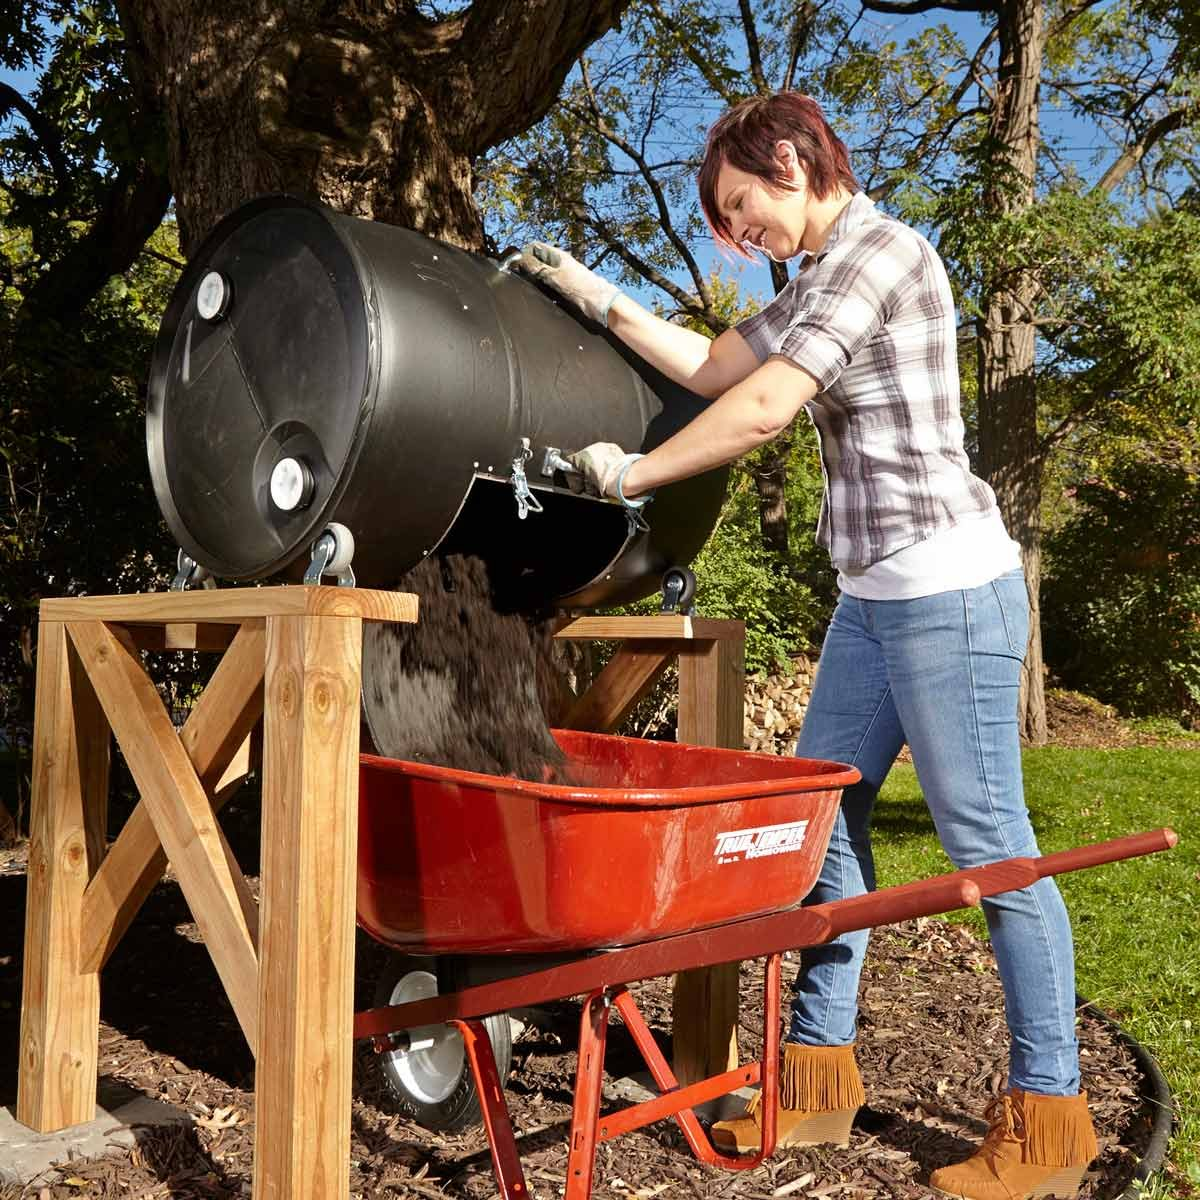 DIY compost bin made from a 55 gallon drum. Elevated legs make it easy to fill a wheelbarrow with compost.